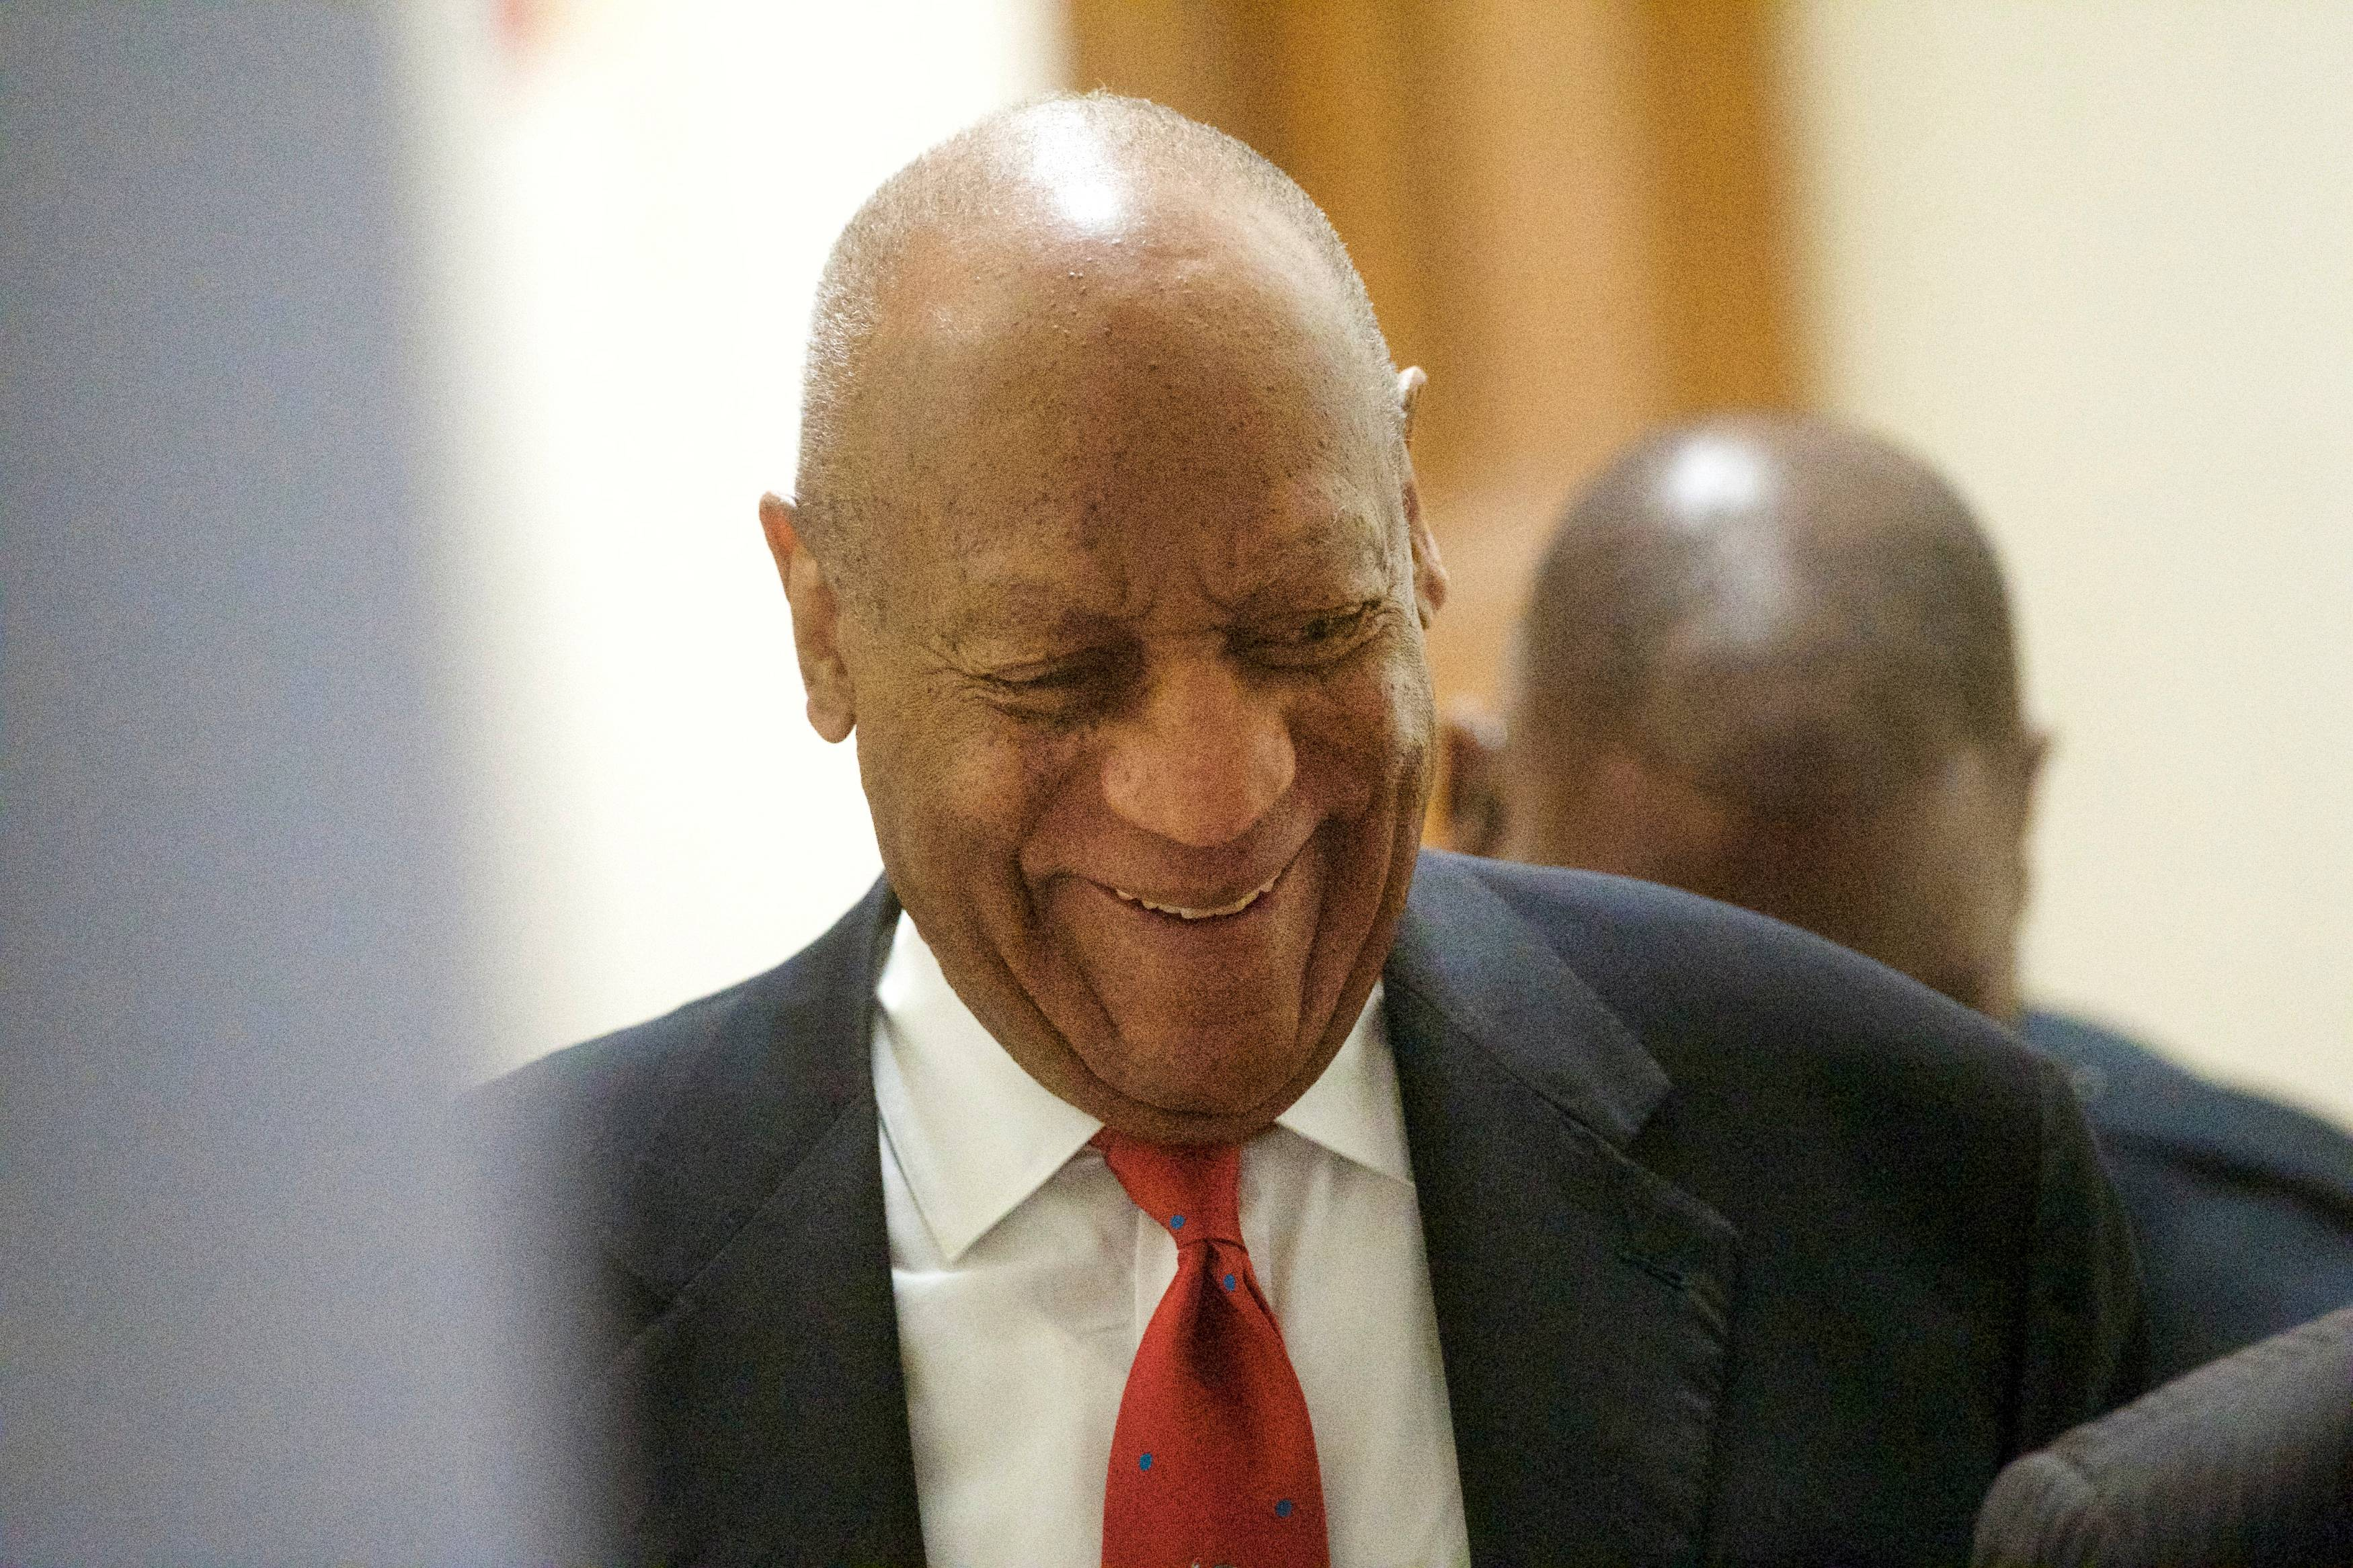 Actor and comedian Bill Cosby walks through the Montgomery County Courthouse as he arrives Thursday for jury deliberations in his sexual assault retrial in Norristown, Pa.